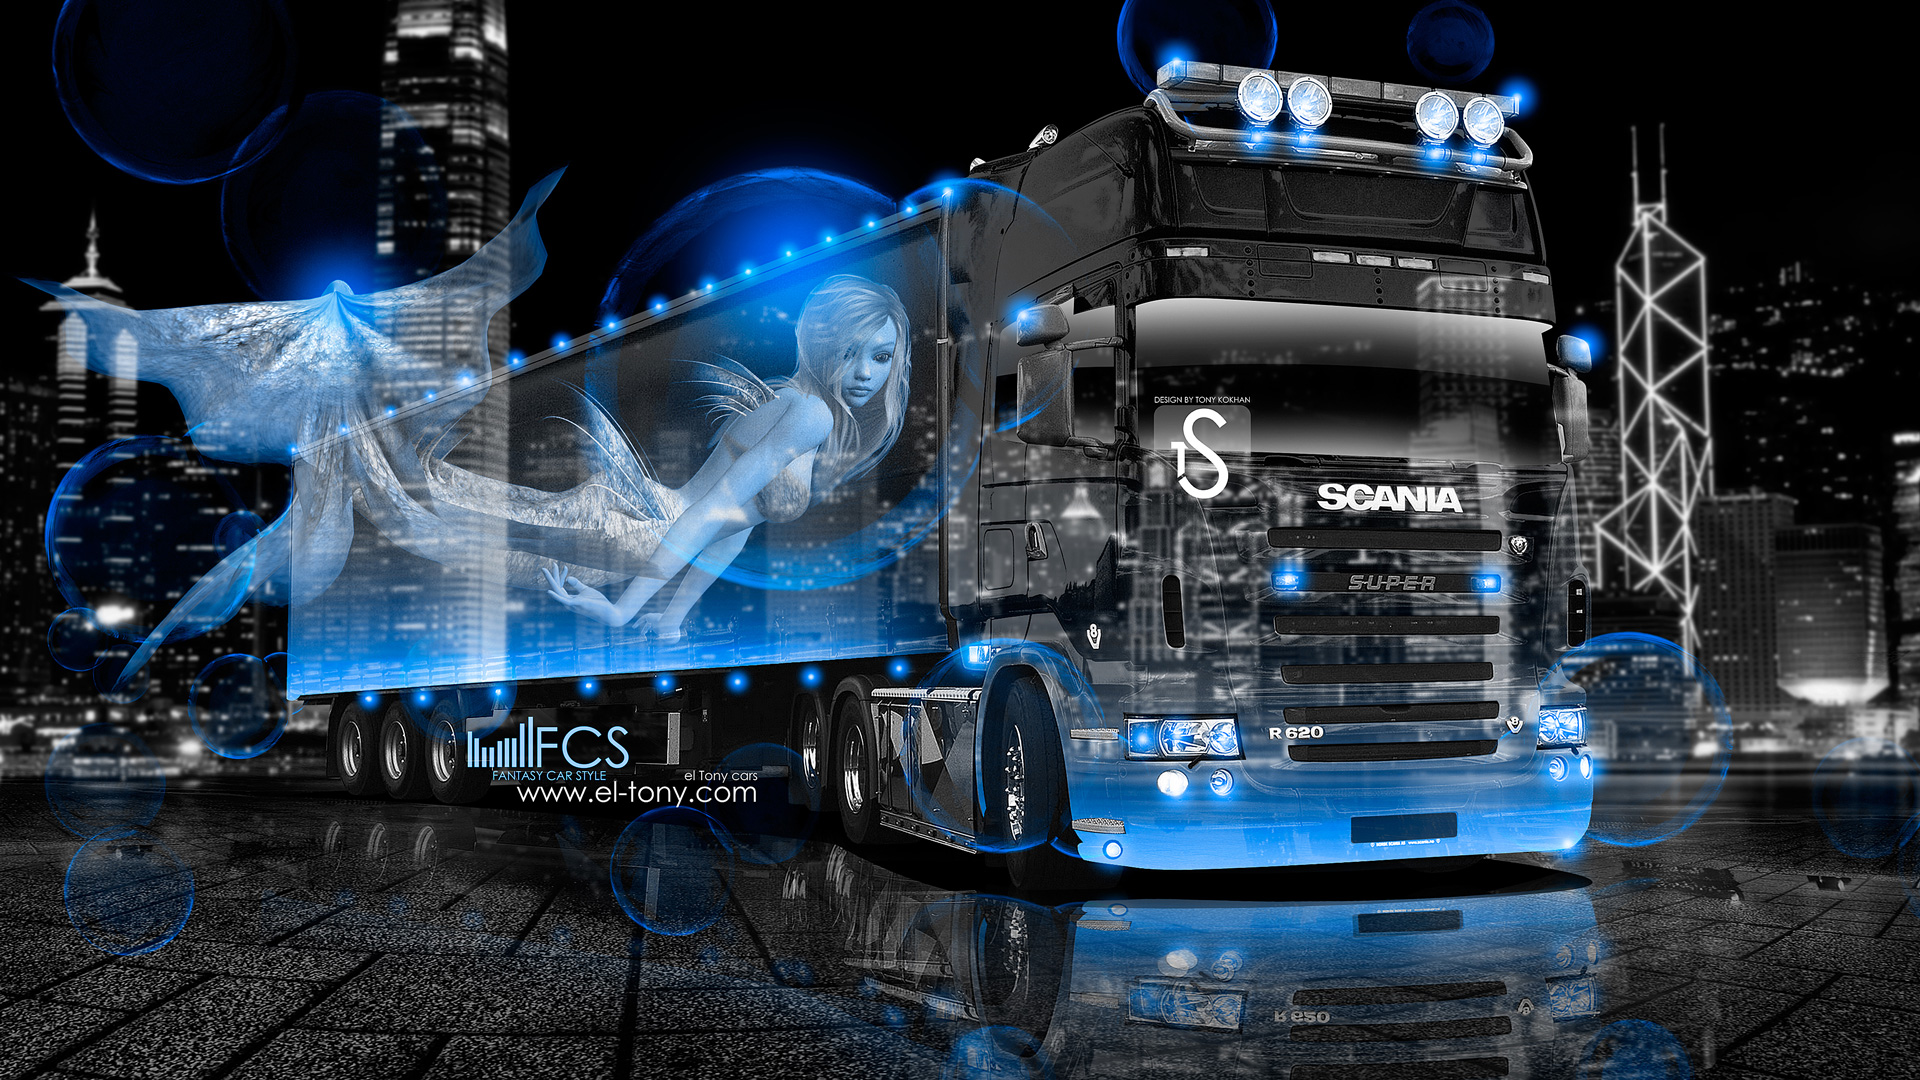 Scania Wallpaper Hd Scania Truck Wallpaper Hd 196614